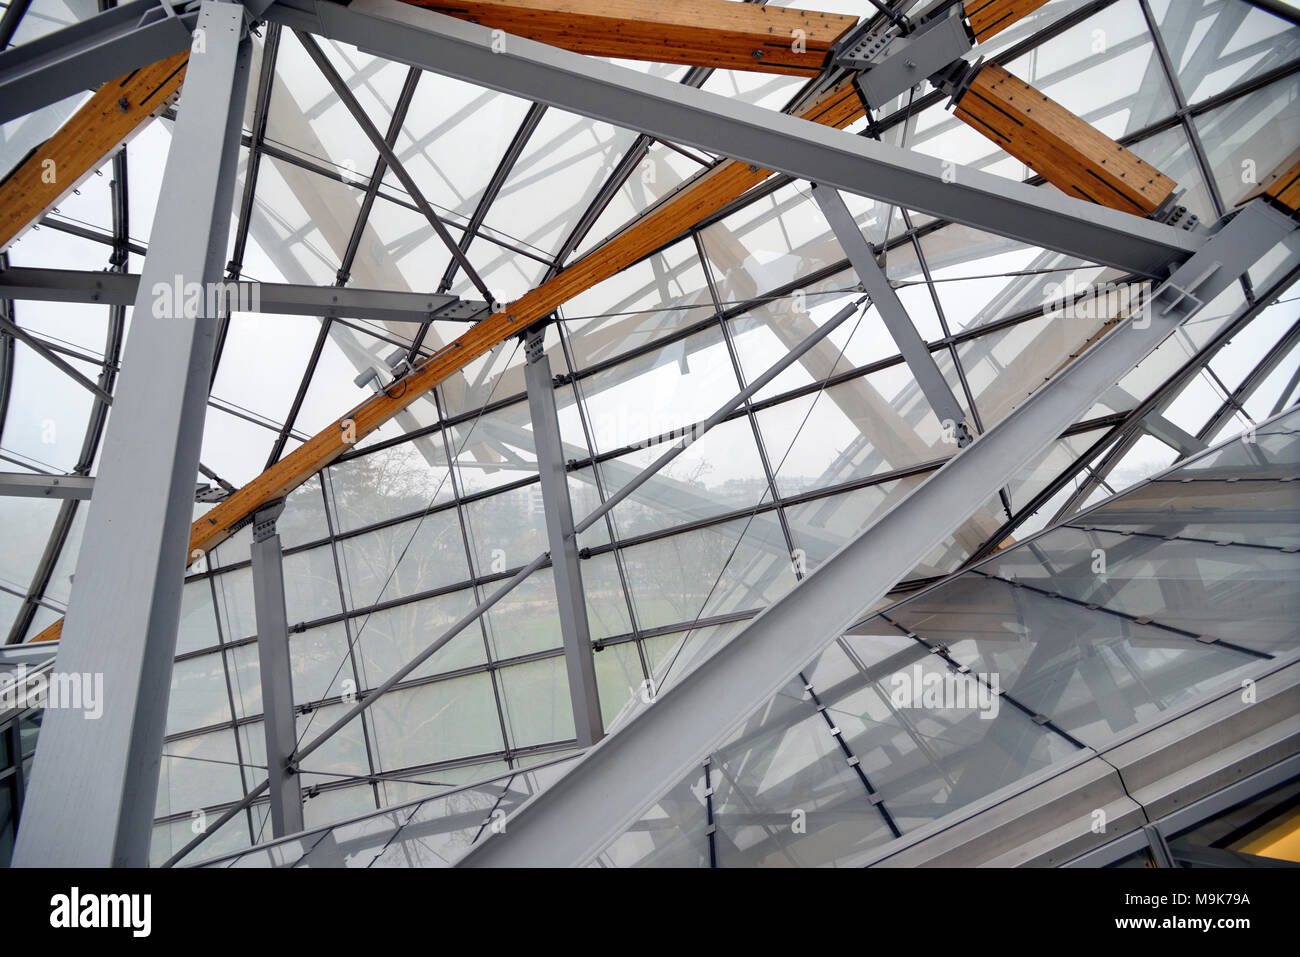 Glass Roof & Roof Structure of the Louis Vuitton Foundation Art Museum & Cultural Centre (2006-14) designed by Frank Gehry, Paris, France - Stock Image